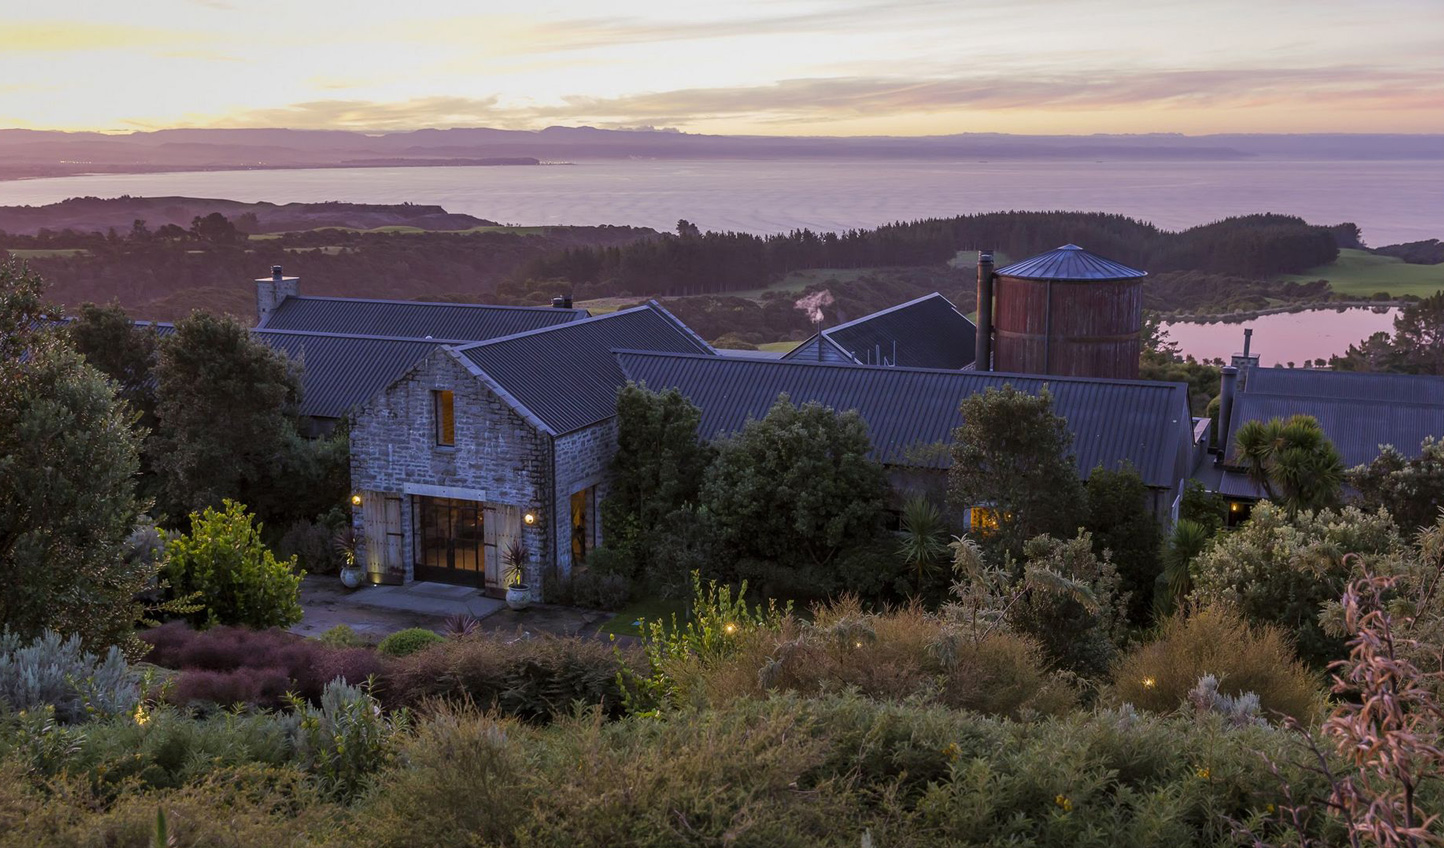 Home at the Farm at Cape Kidnappers